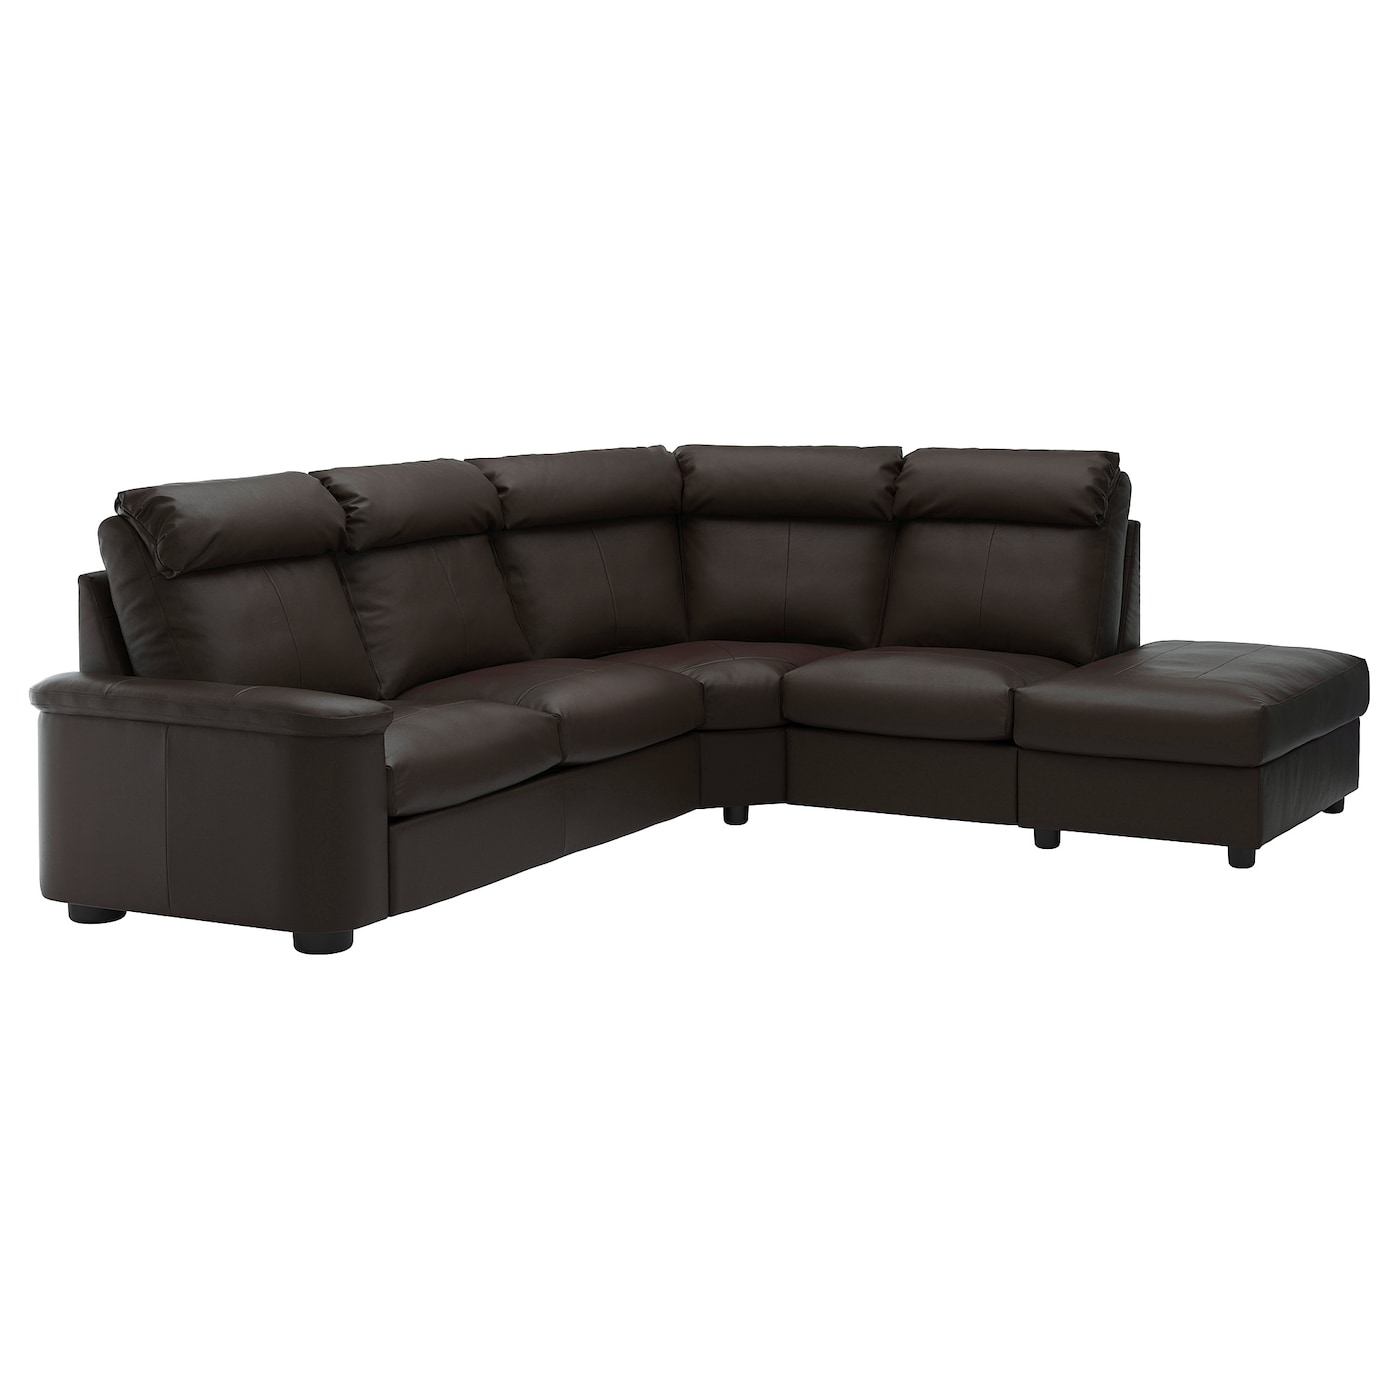 Superieur IKEA LIDHULT Corner Sofa, 5 Seat 10 Year Guarantee. Read About The Terms